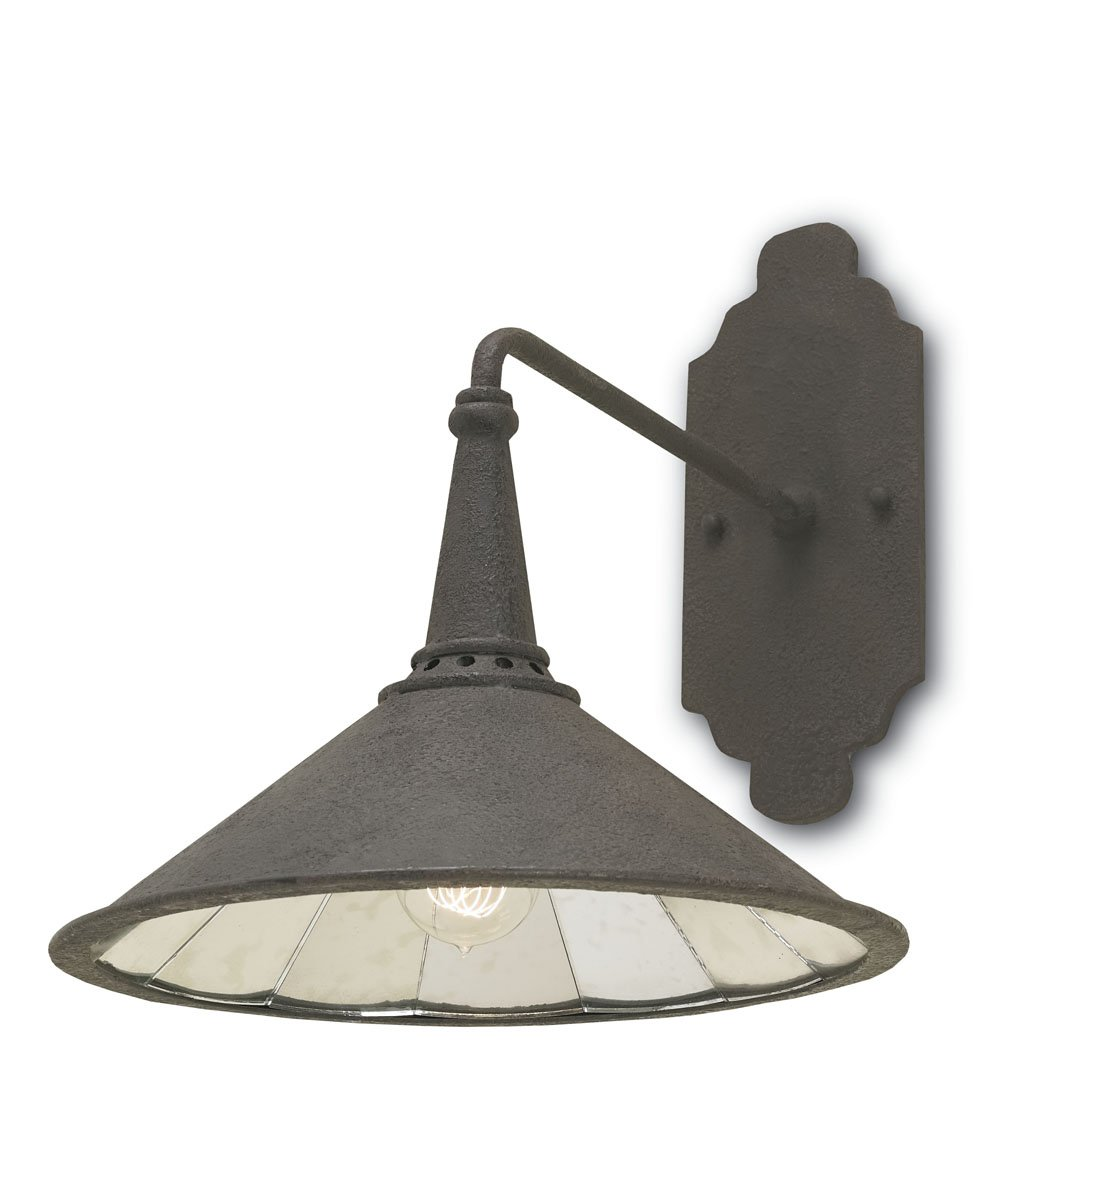 Currey and Company 5151 Manuscript - One Light Wall Sconce Mole Black/Antique Mirror Finish - - Amazon.com  sc 1 st  Amazon.com : currey and company sconces - www.canuckmediamonitor.org